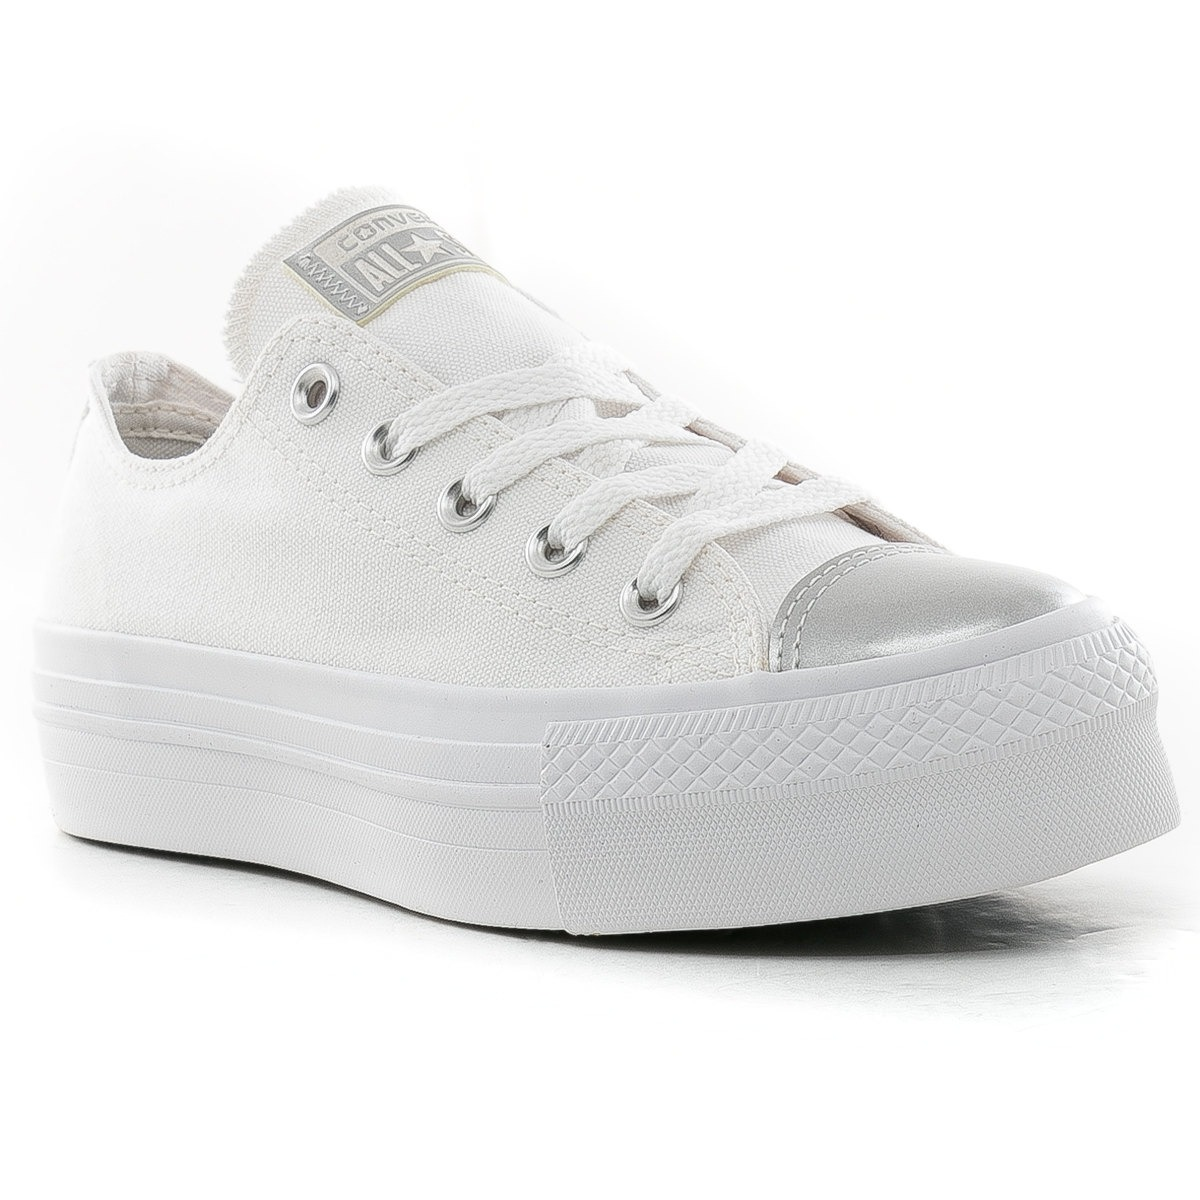 cf49d4eb02342 ... usa zapatillas all star platform oxc blanco converse. cargando zoom.  3e8bb 59b02